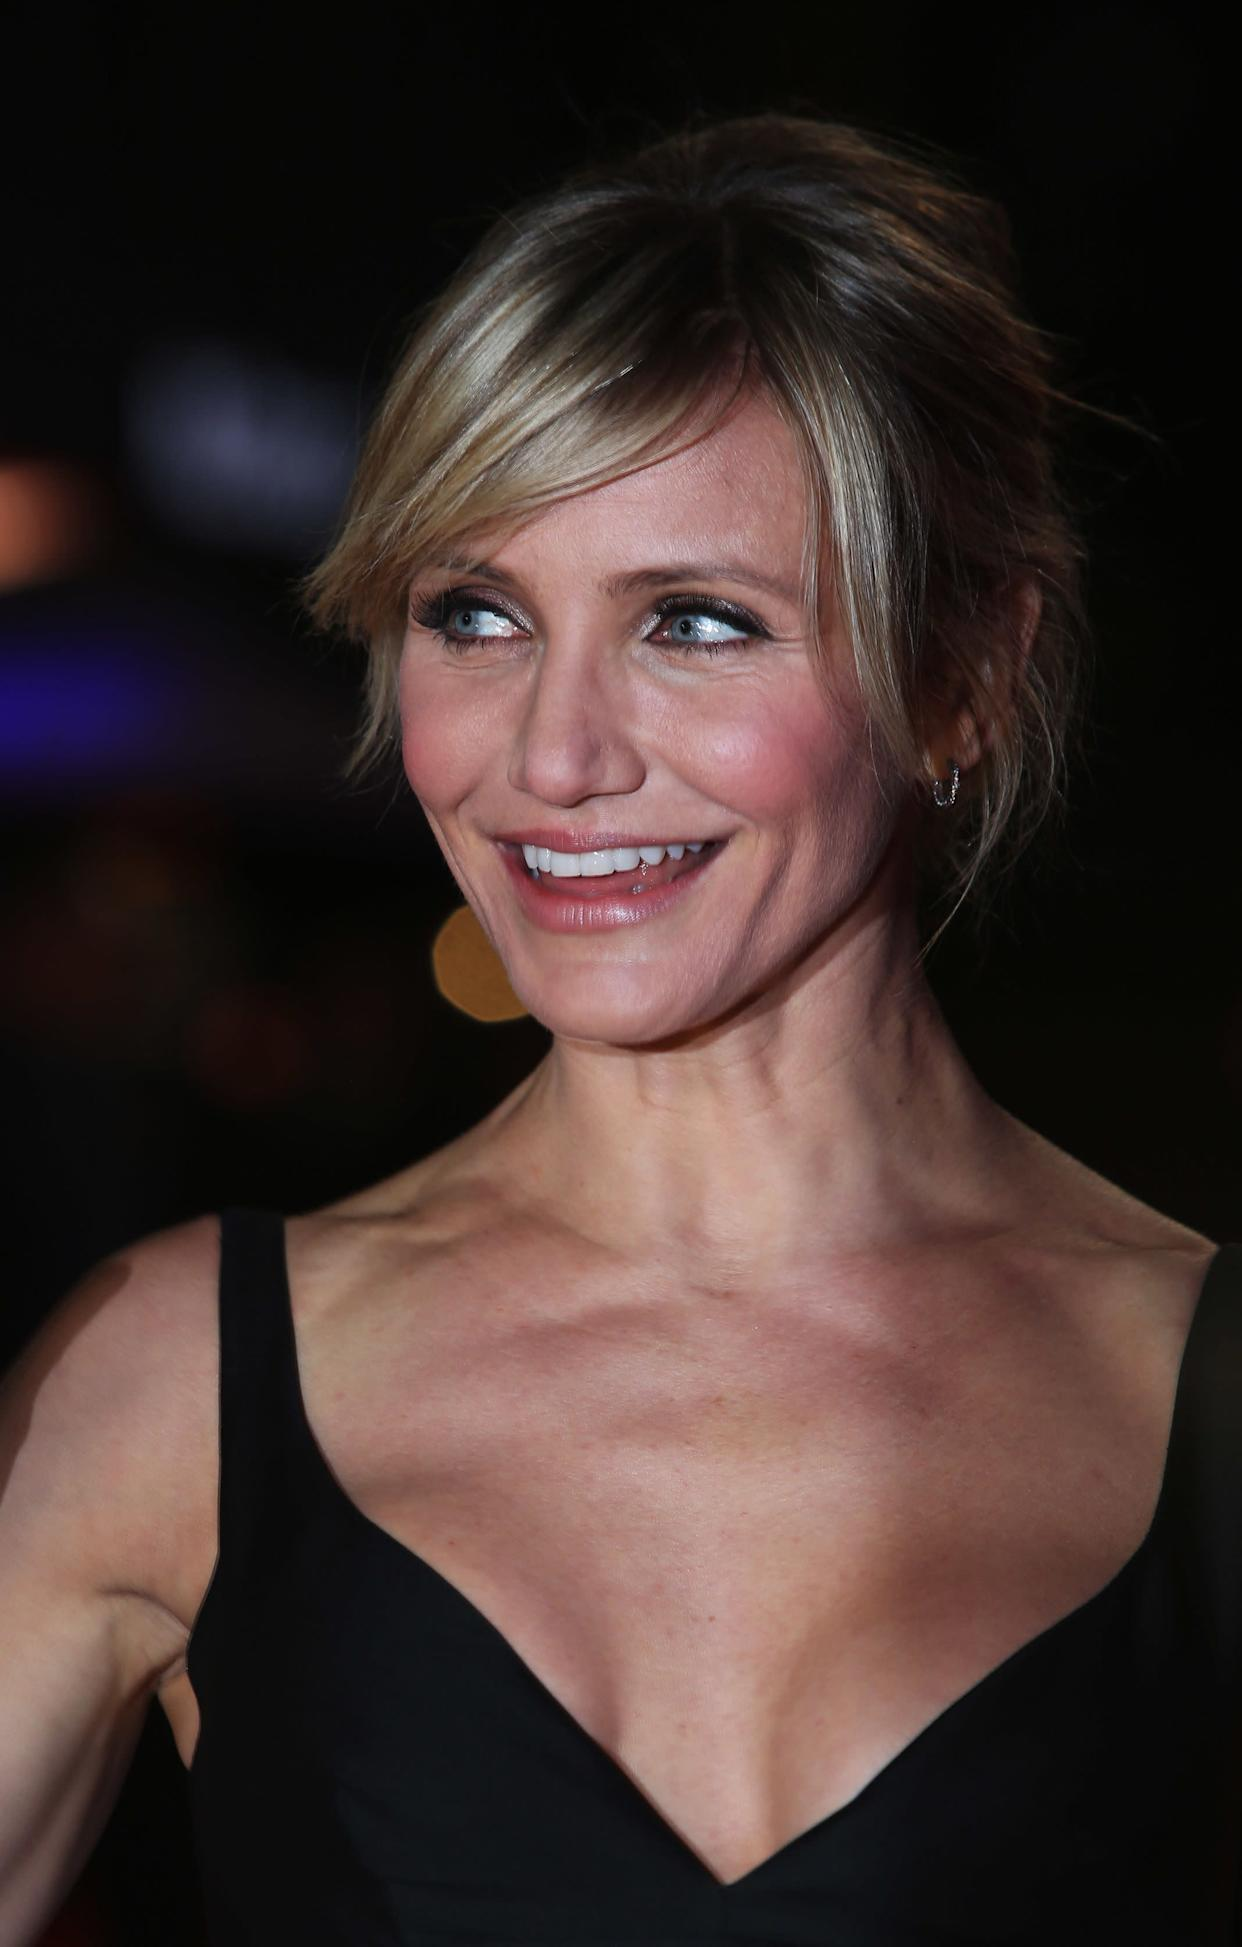 """""""The fountain of youth [for me], let's see...I guess it's exercise, healthy diet, lots of water, lots of laughter, lots of sex,"""" <a href=""""http://www.vogue.co.uk/news/2010/06/01/cameron-diaz-july-vogue-2010-cover"""" rel=""""nofollow noopener"""" target=""""_blank"""" data-ylk=""""slk:Diaz told Vogue in 2010"""" class=""""link rapid-noclick-resp"""">Diaz told Vogue in 2010</a>, adding, """"yes, sex, we need that as human beings. It's healthy, it's natural, it's what we are here to do!"""""""